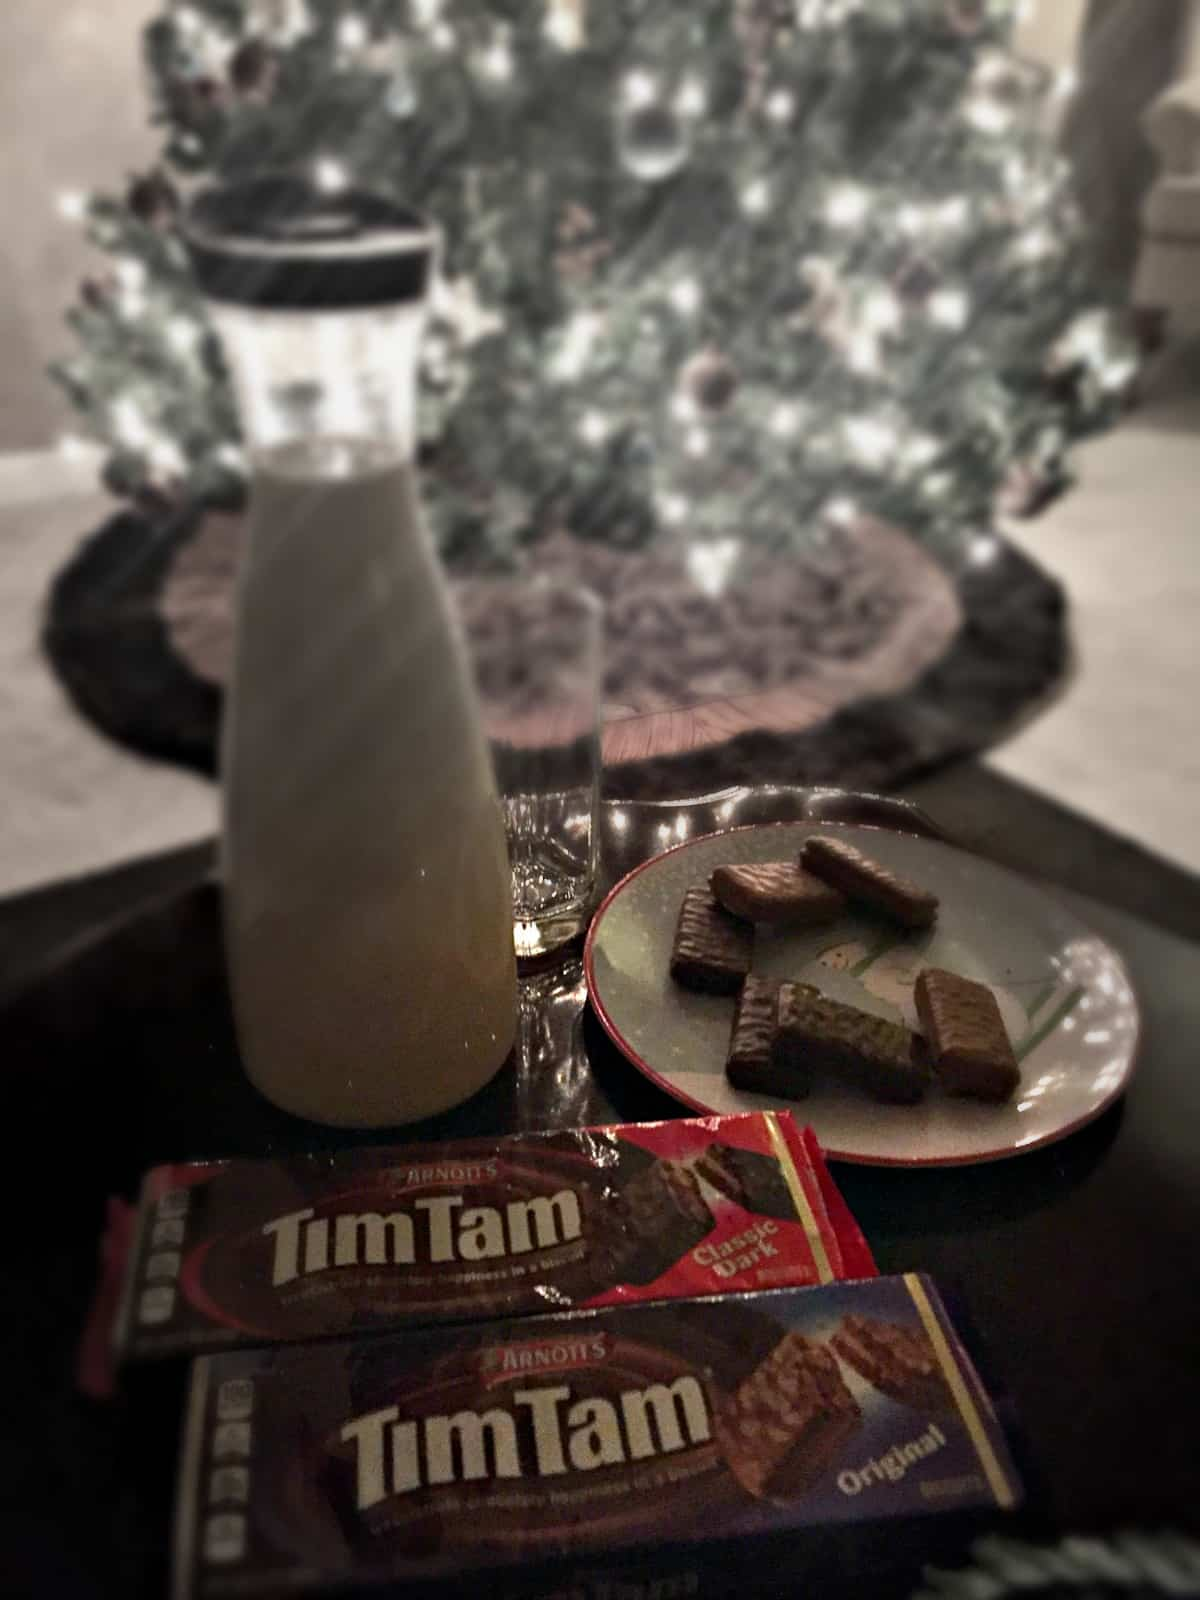 Tim Tam 2 for $5 at Publix to leave out for Santa Claus